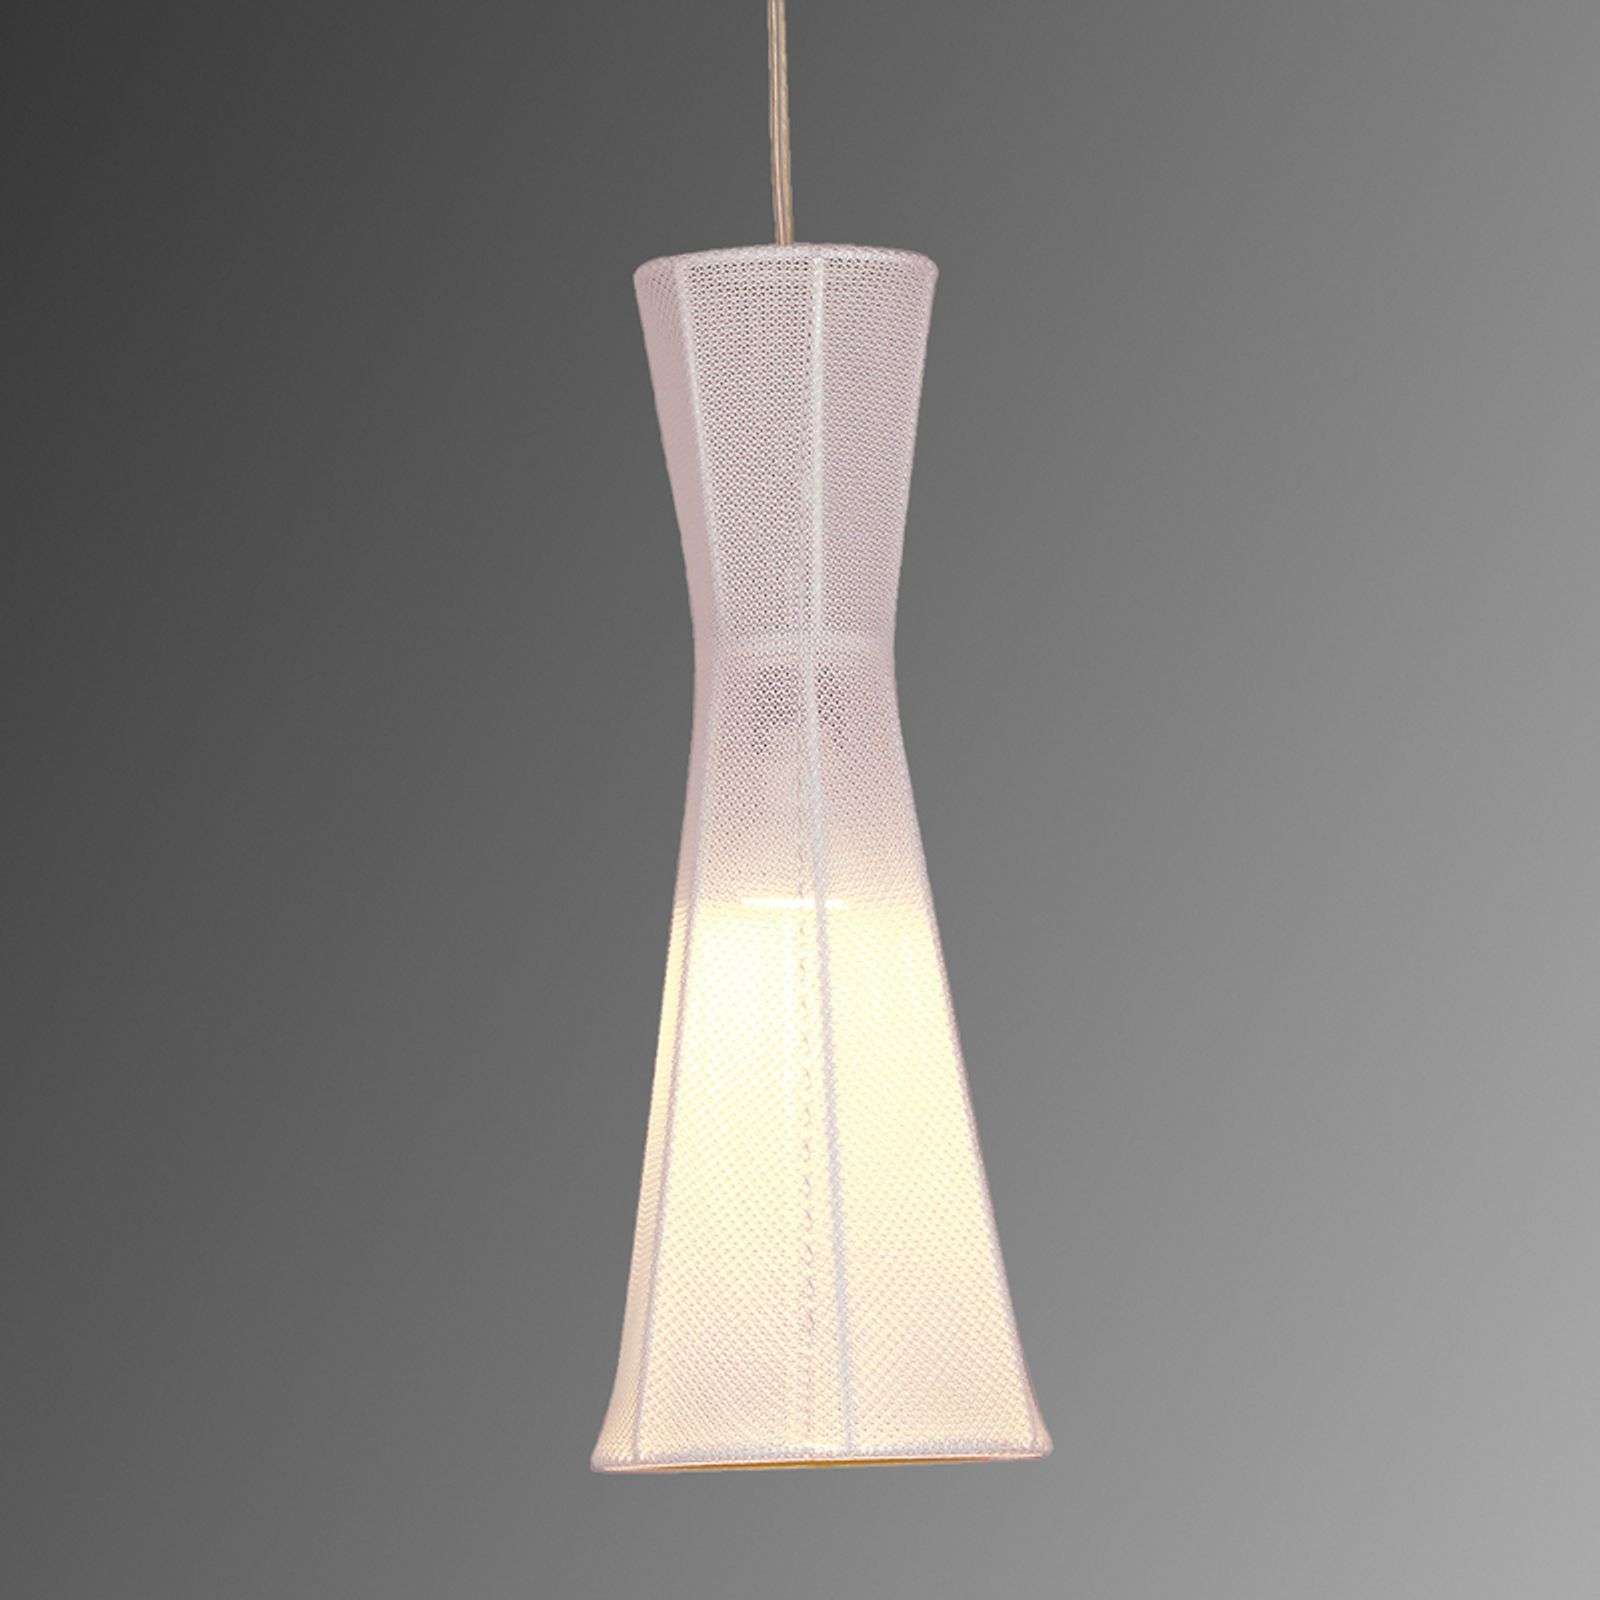 Suspension LED Felice, 40 cm, blanche